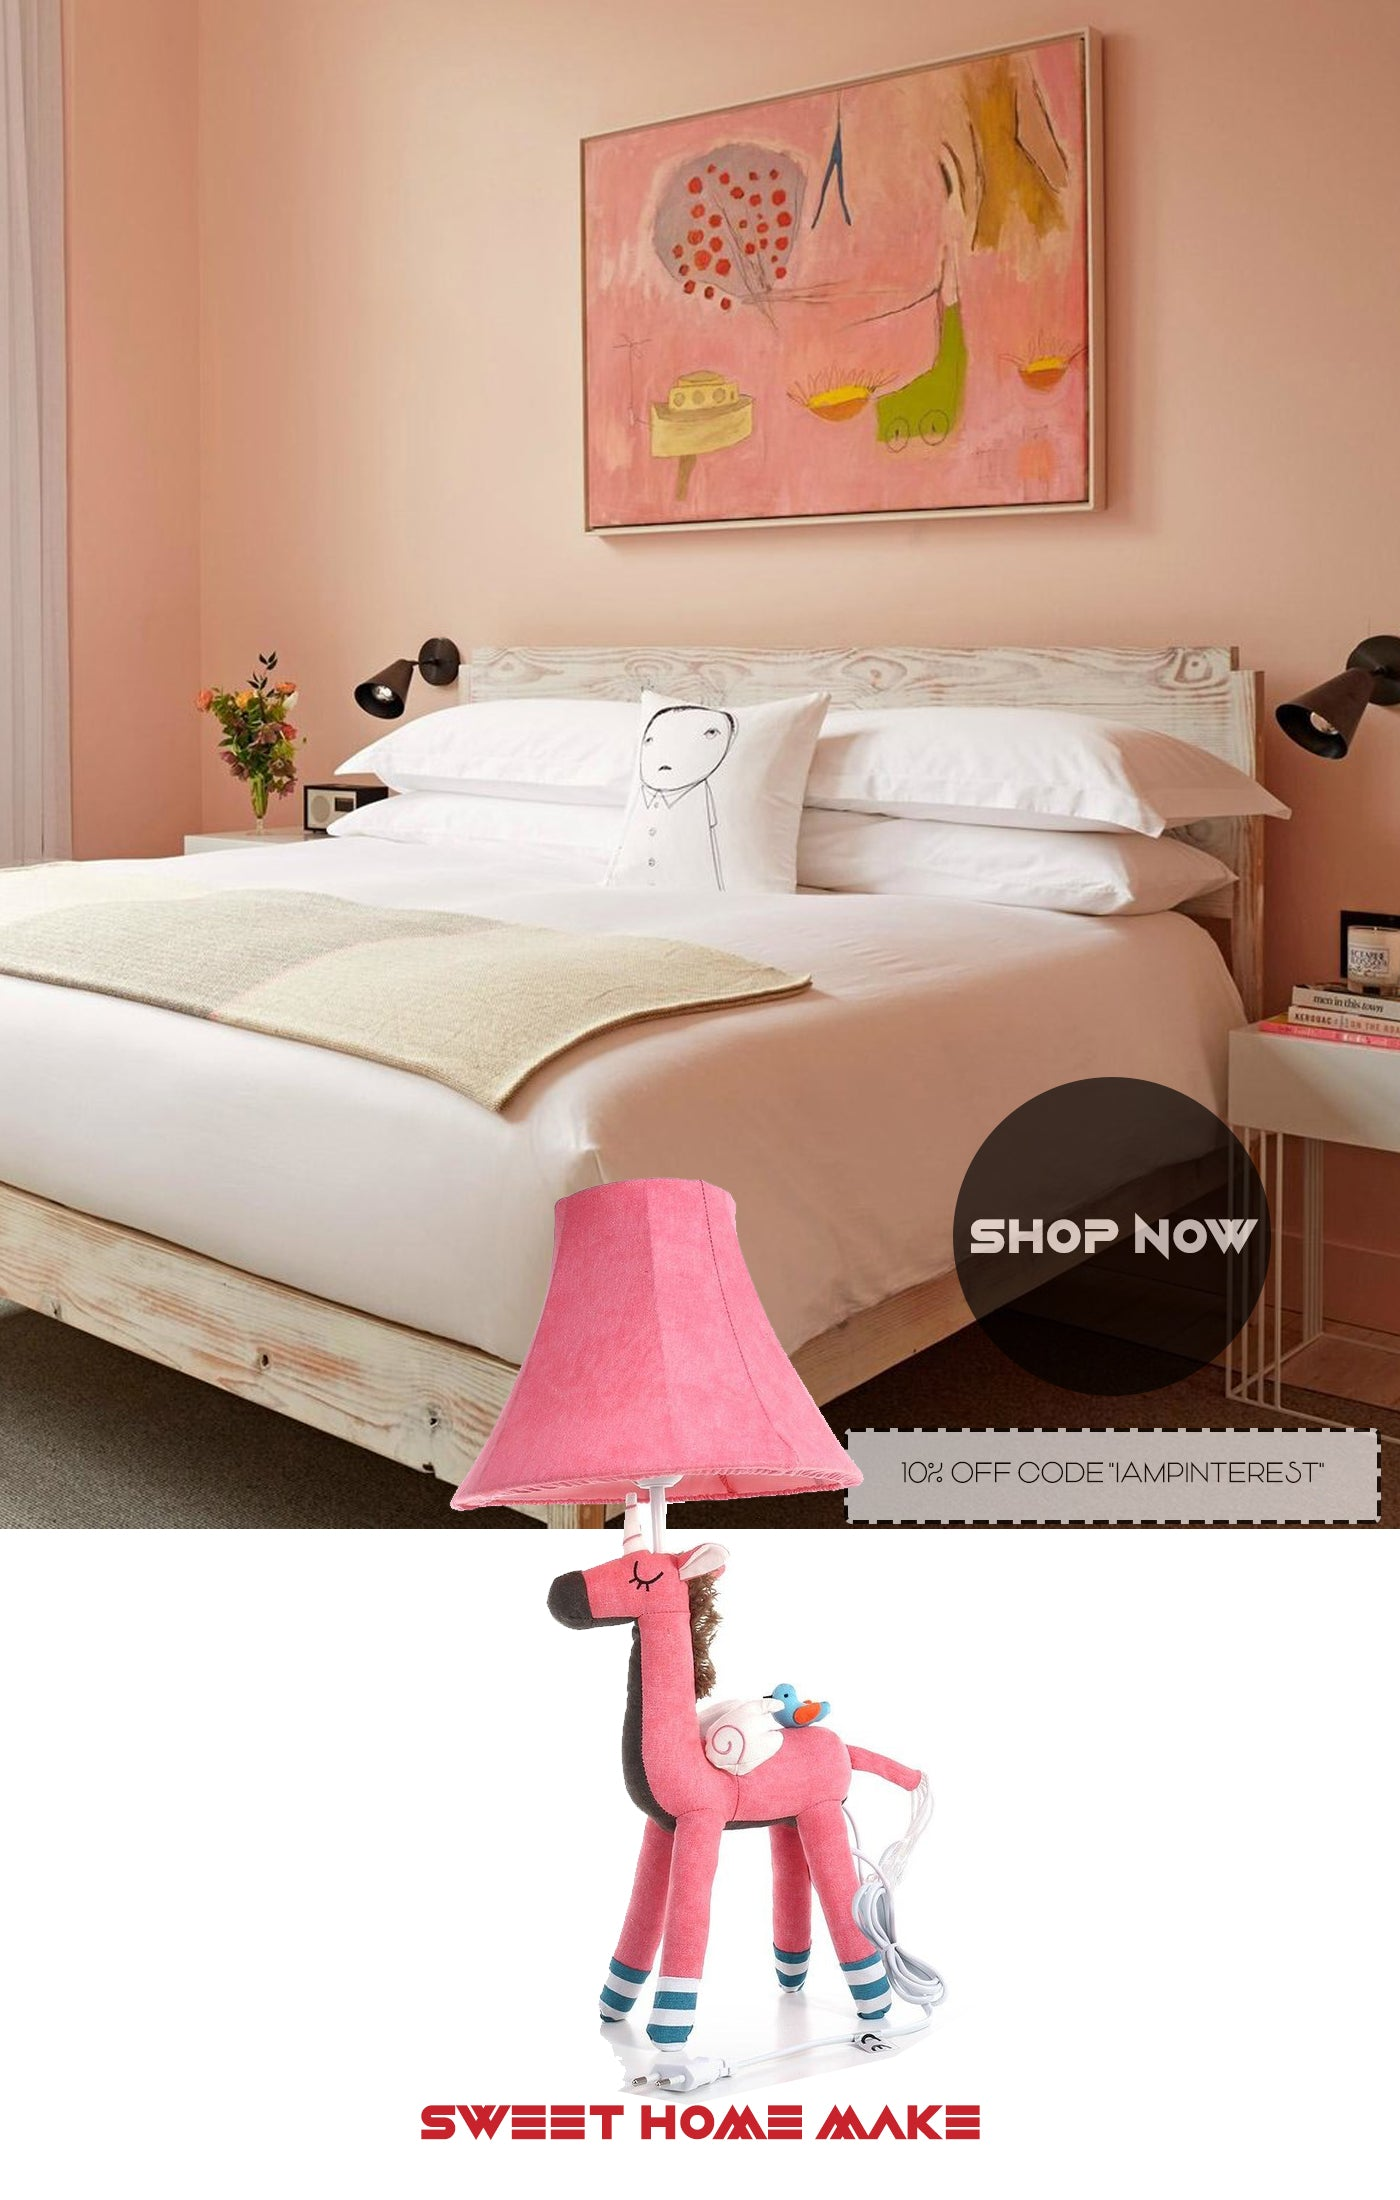 Unicorn Toys with Pink Table Lamp For Bedroom Girl Decor